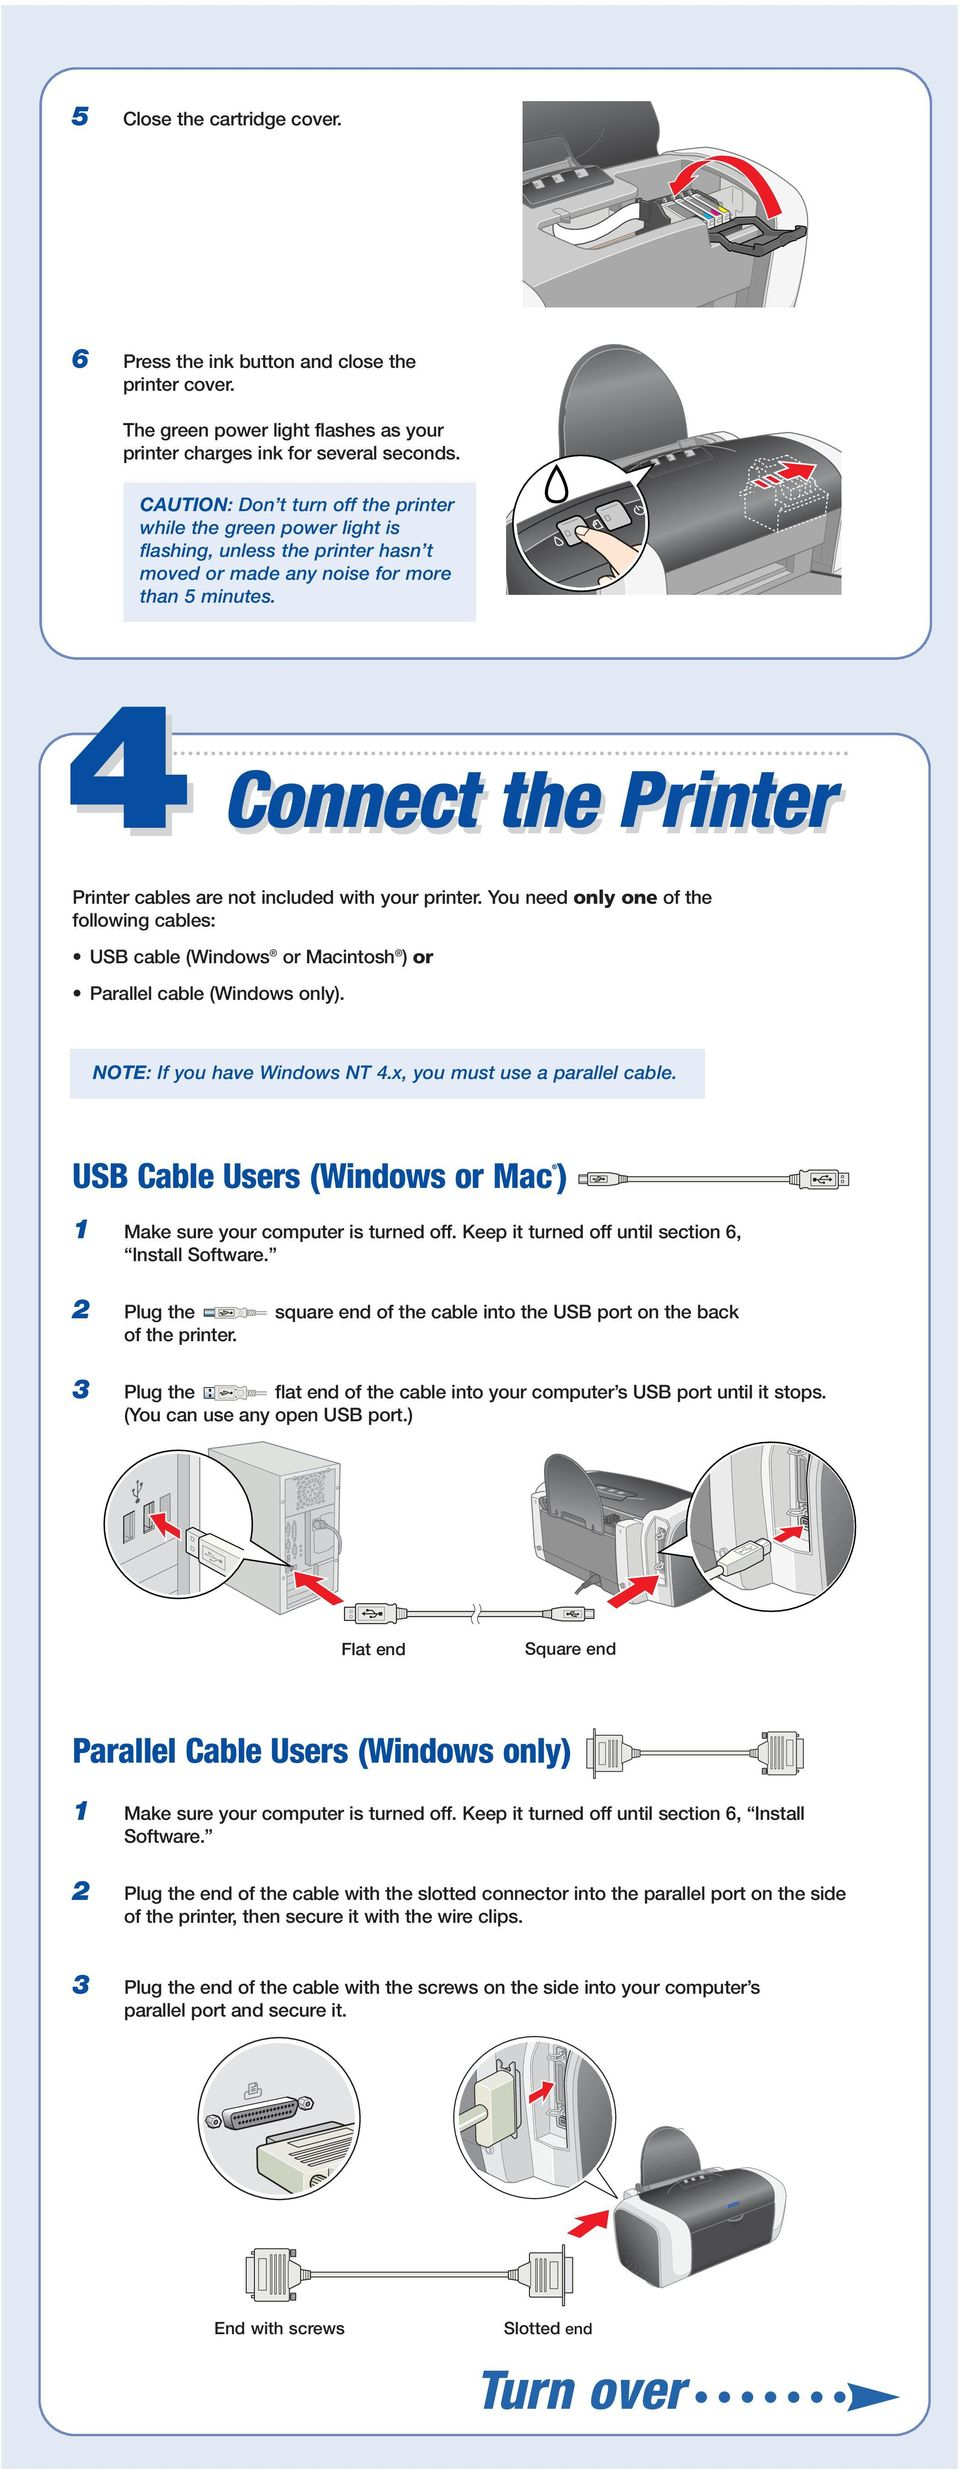 4 Connect the Printer Printer cables are not included with your printer. You need only one of the following cables: USB cable (Windows or Macintosh ) or Parallel cable (Windows only).